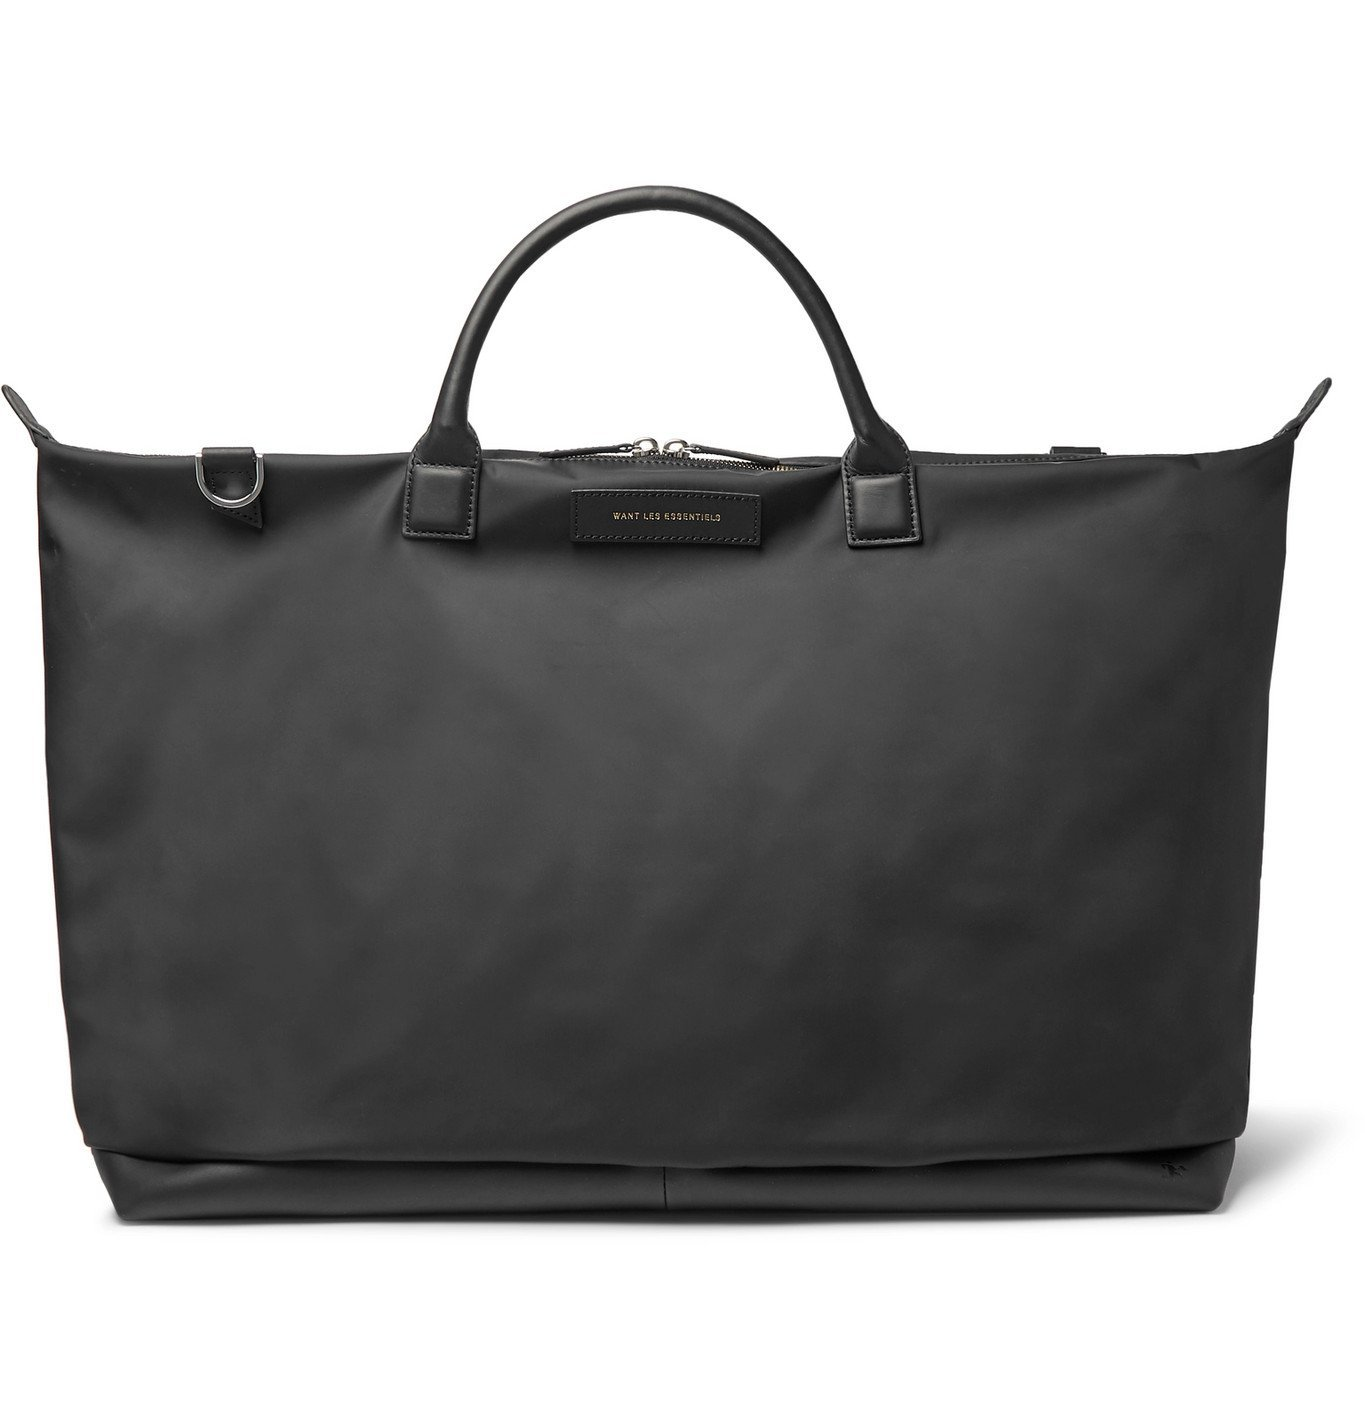 Photo: WANT LES ESSENTIELS - Hartsfield Nylon Tote Bag - Black